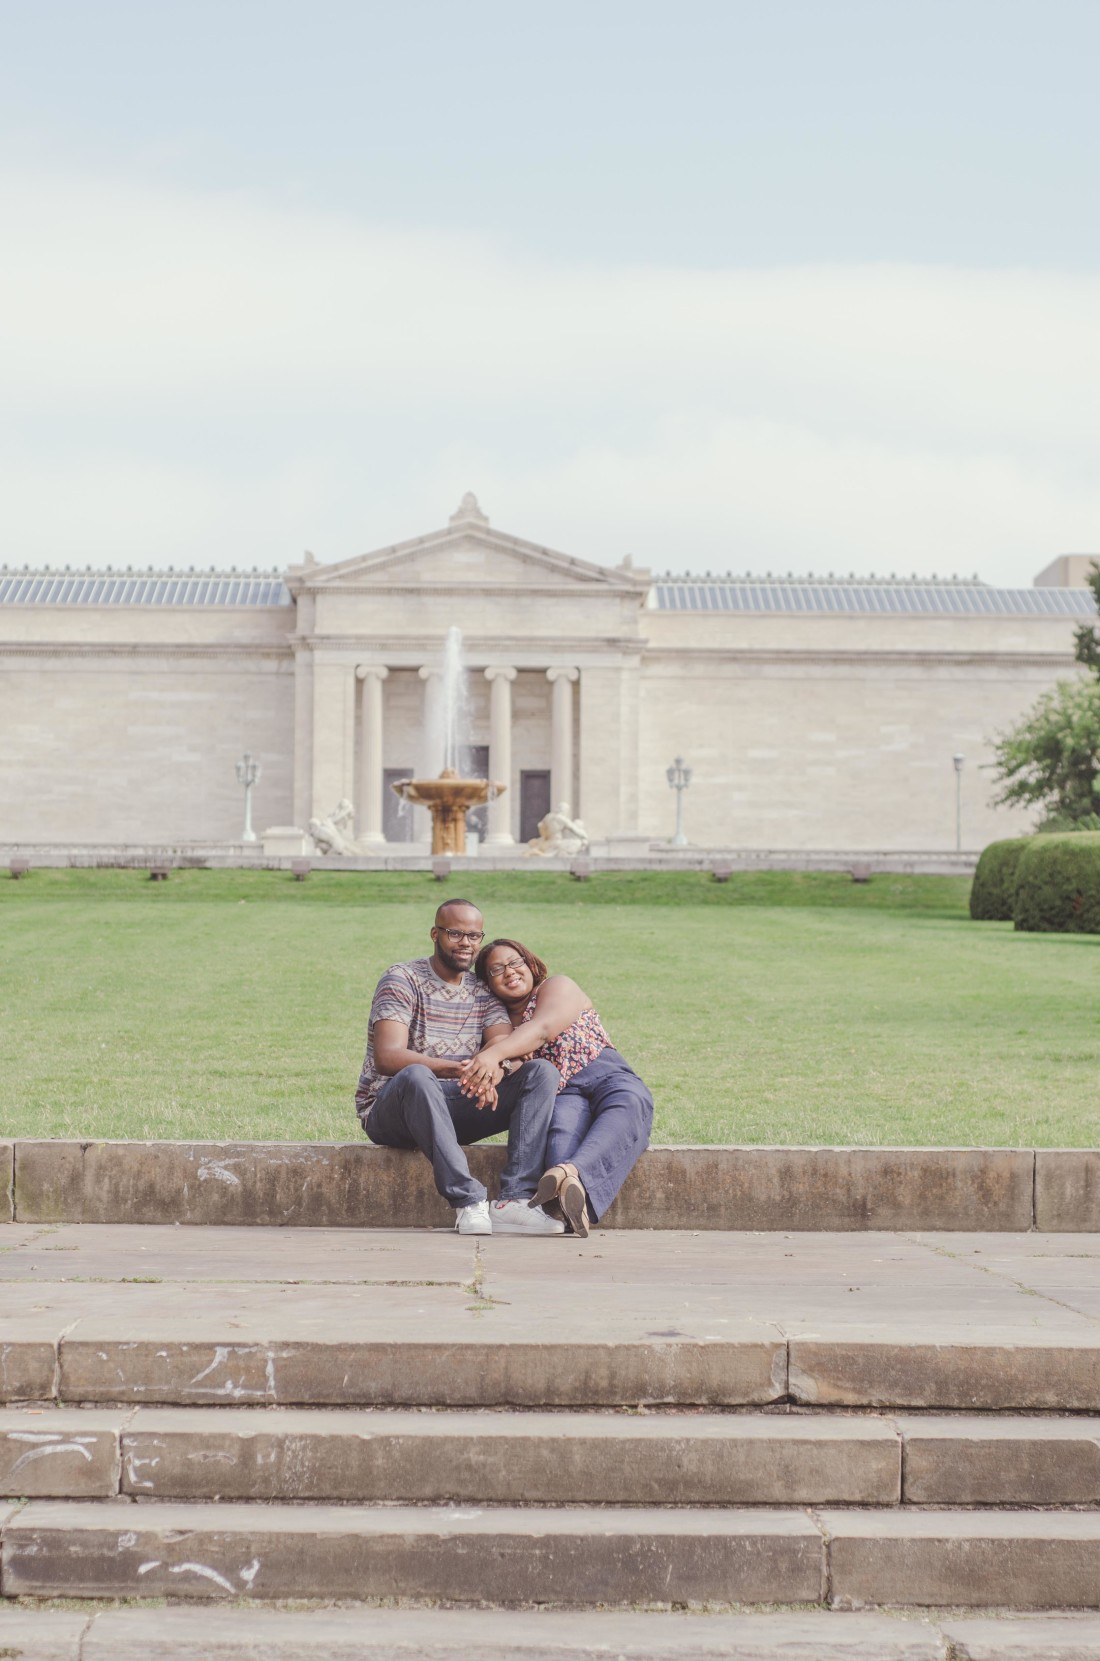 engagement photos at cleveland museum of art wade oval in cleveland ohio